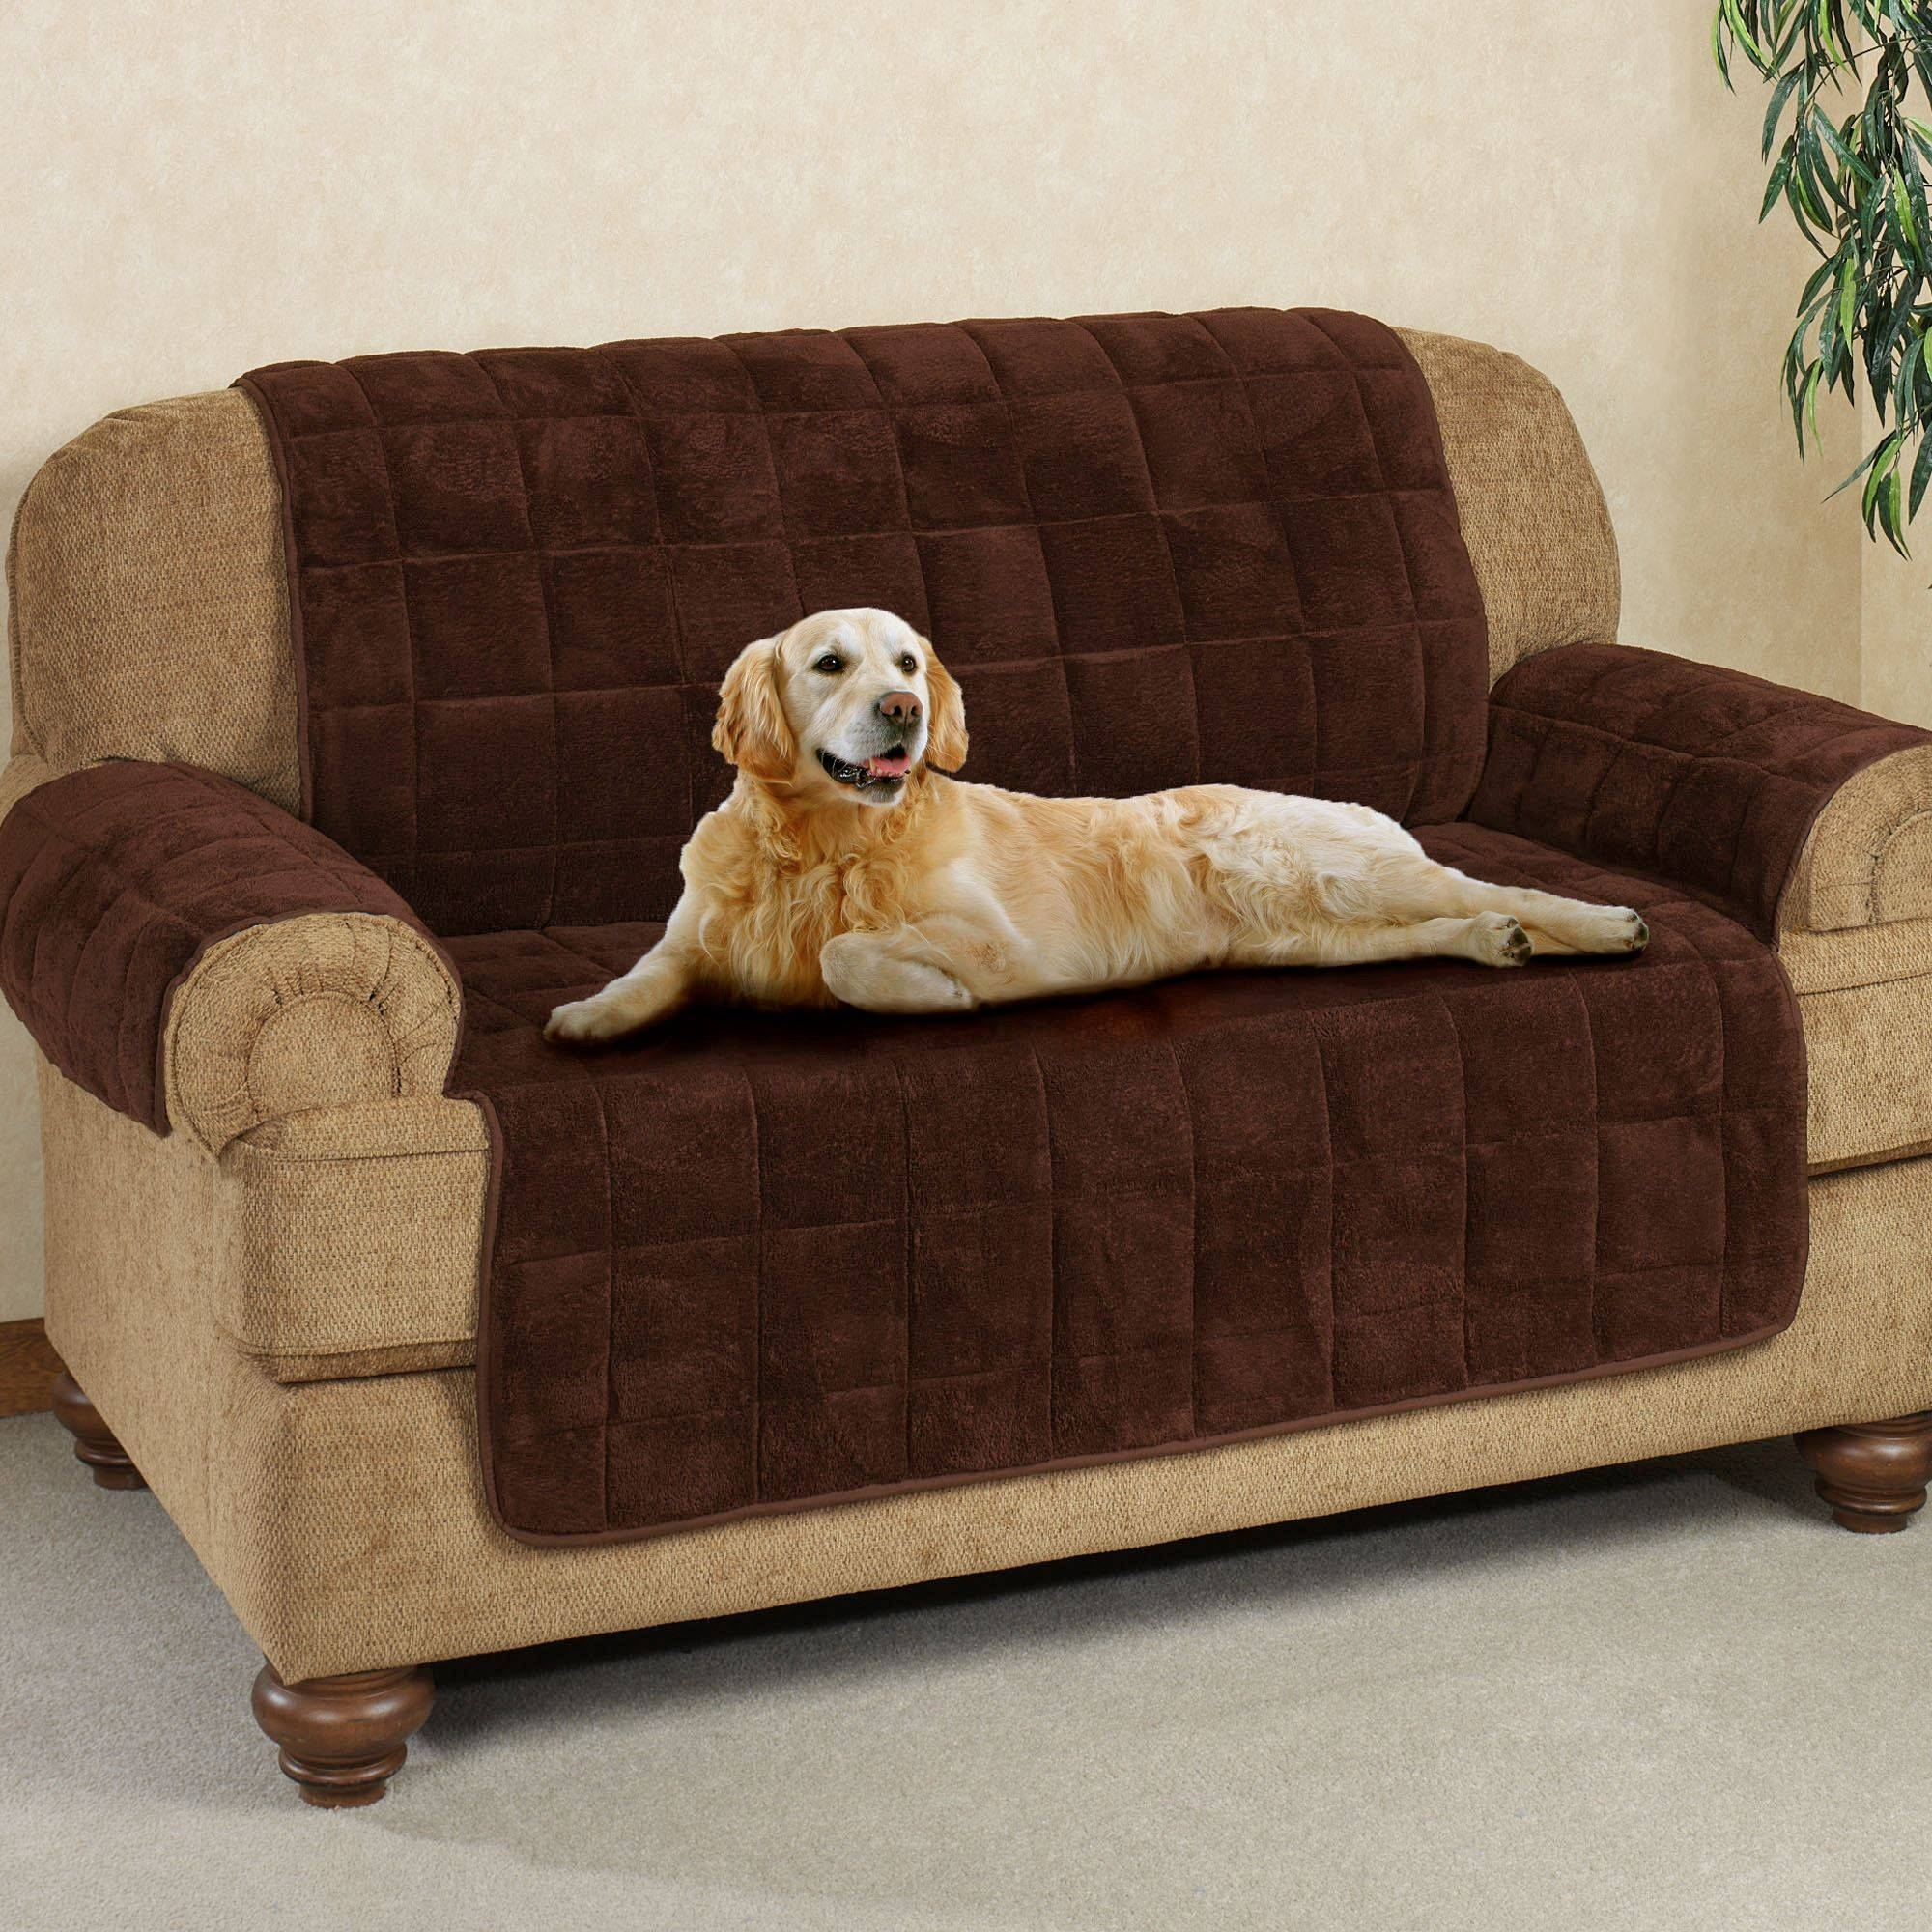 Furniture Covers, Pet Covers, Furniture Protectors | Touch Of Class pertaining to Dog Sofas And Chairs (Image 9 of 15)